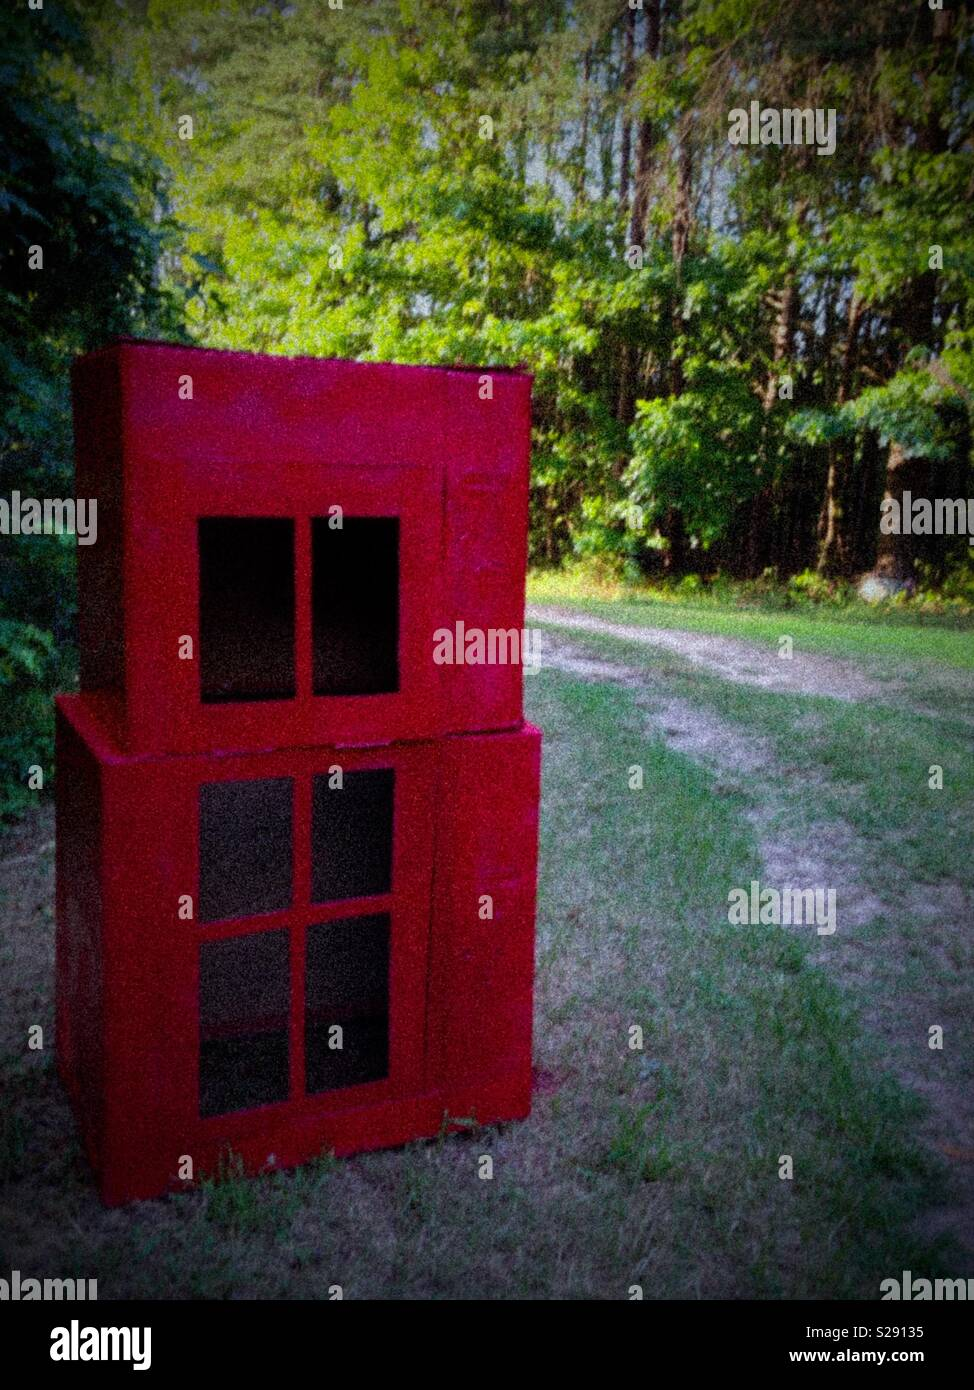 Grainy photo of red telephone kiosk made of TV boxes for Vacation Bible School - Stock Image